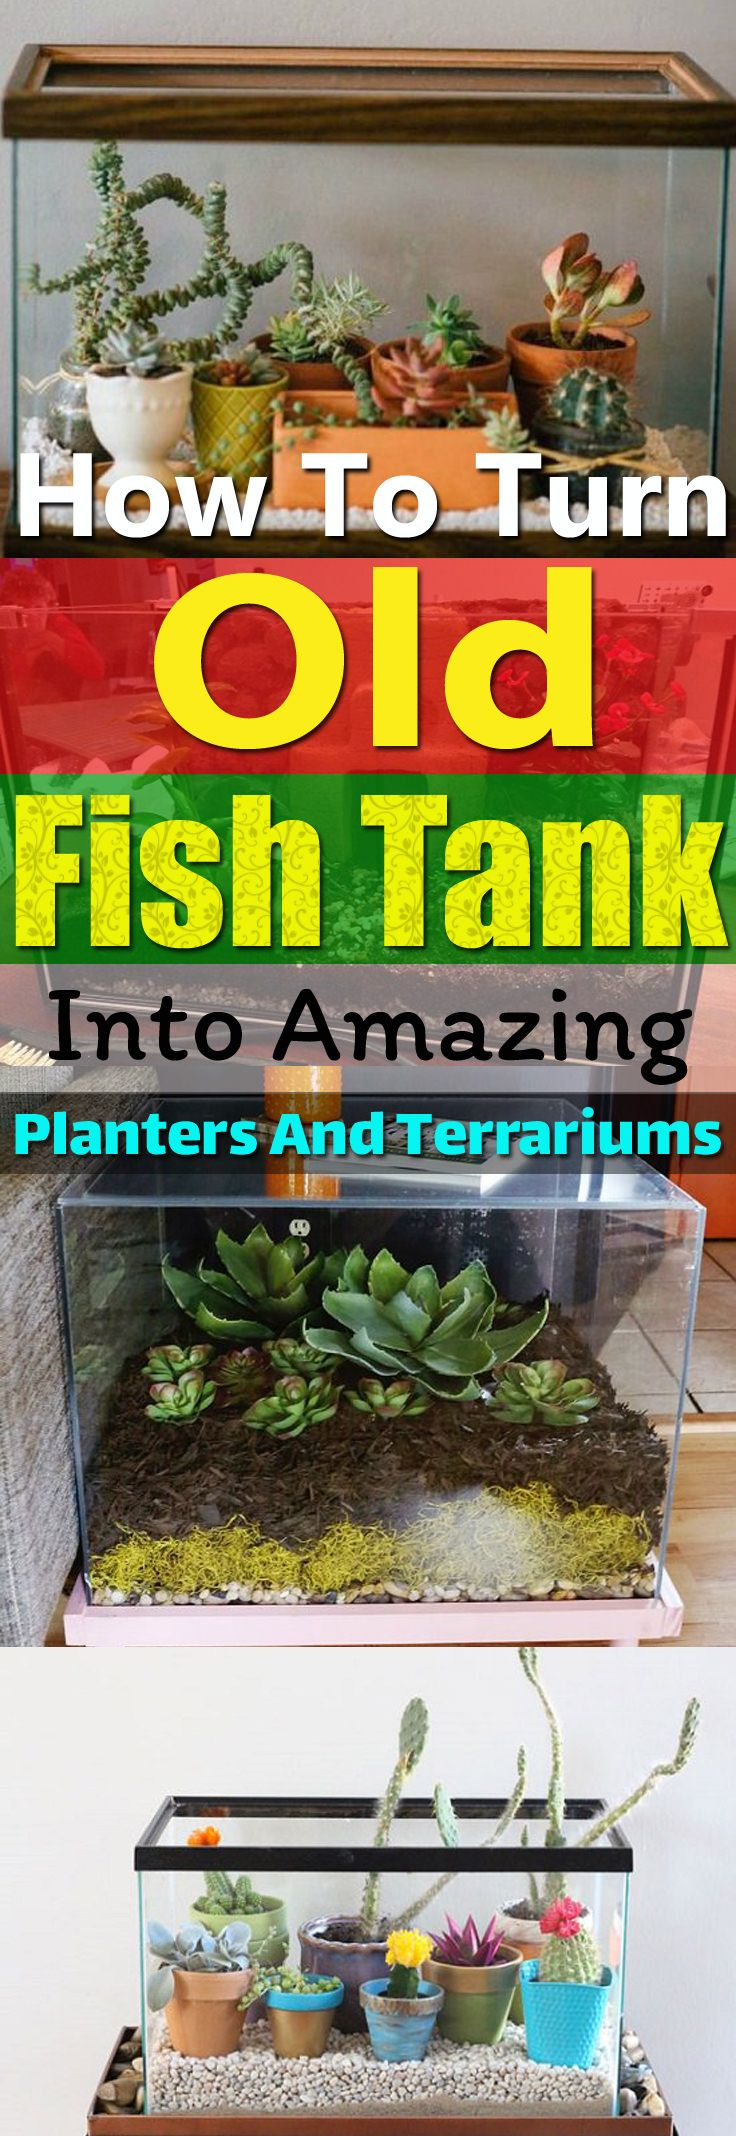 How To Turn Old Fish Tanks Into Amazing Planters And Terrariums